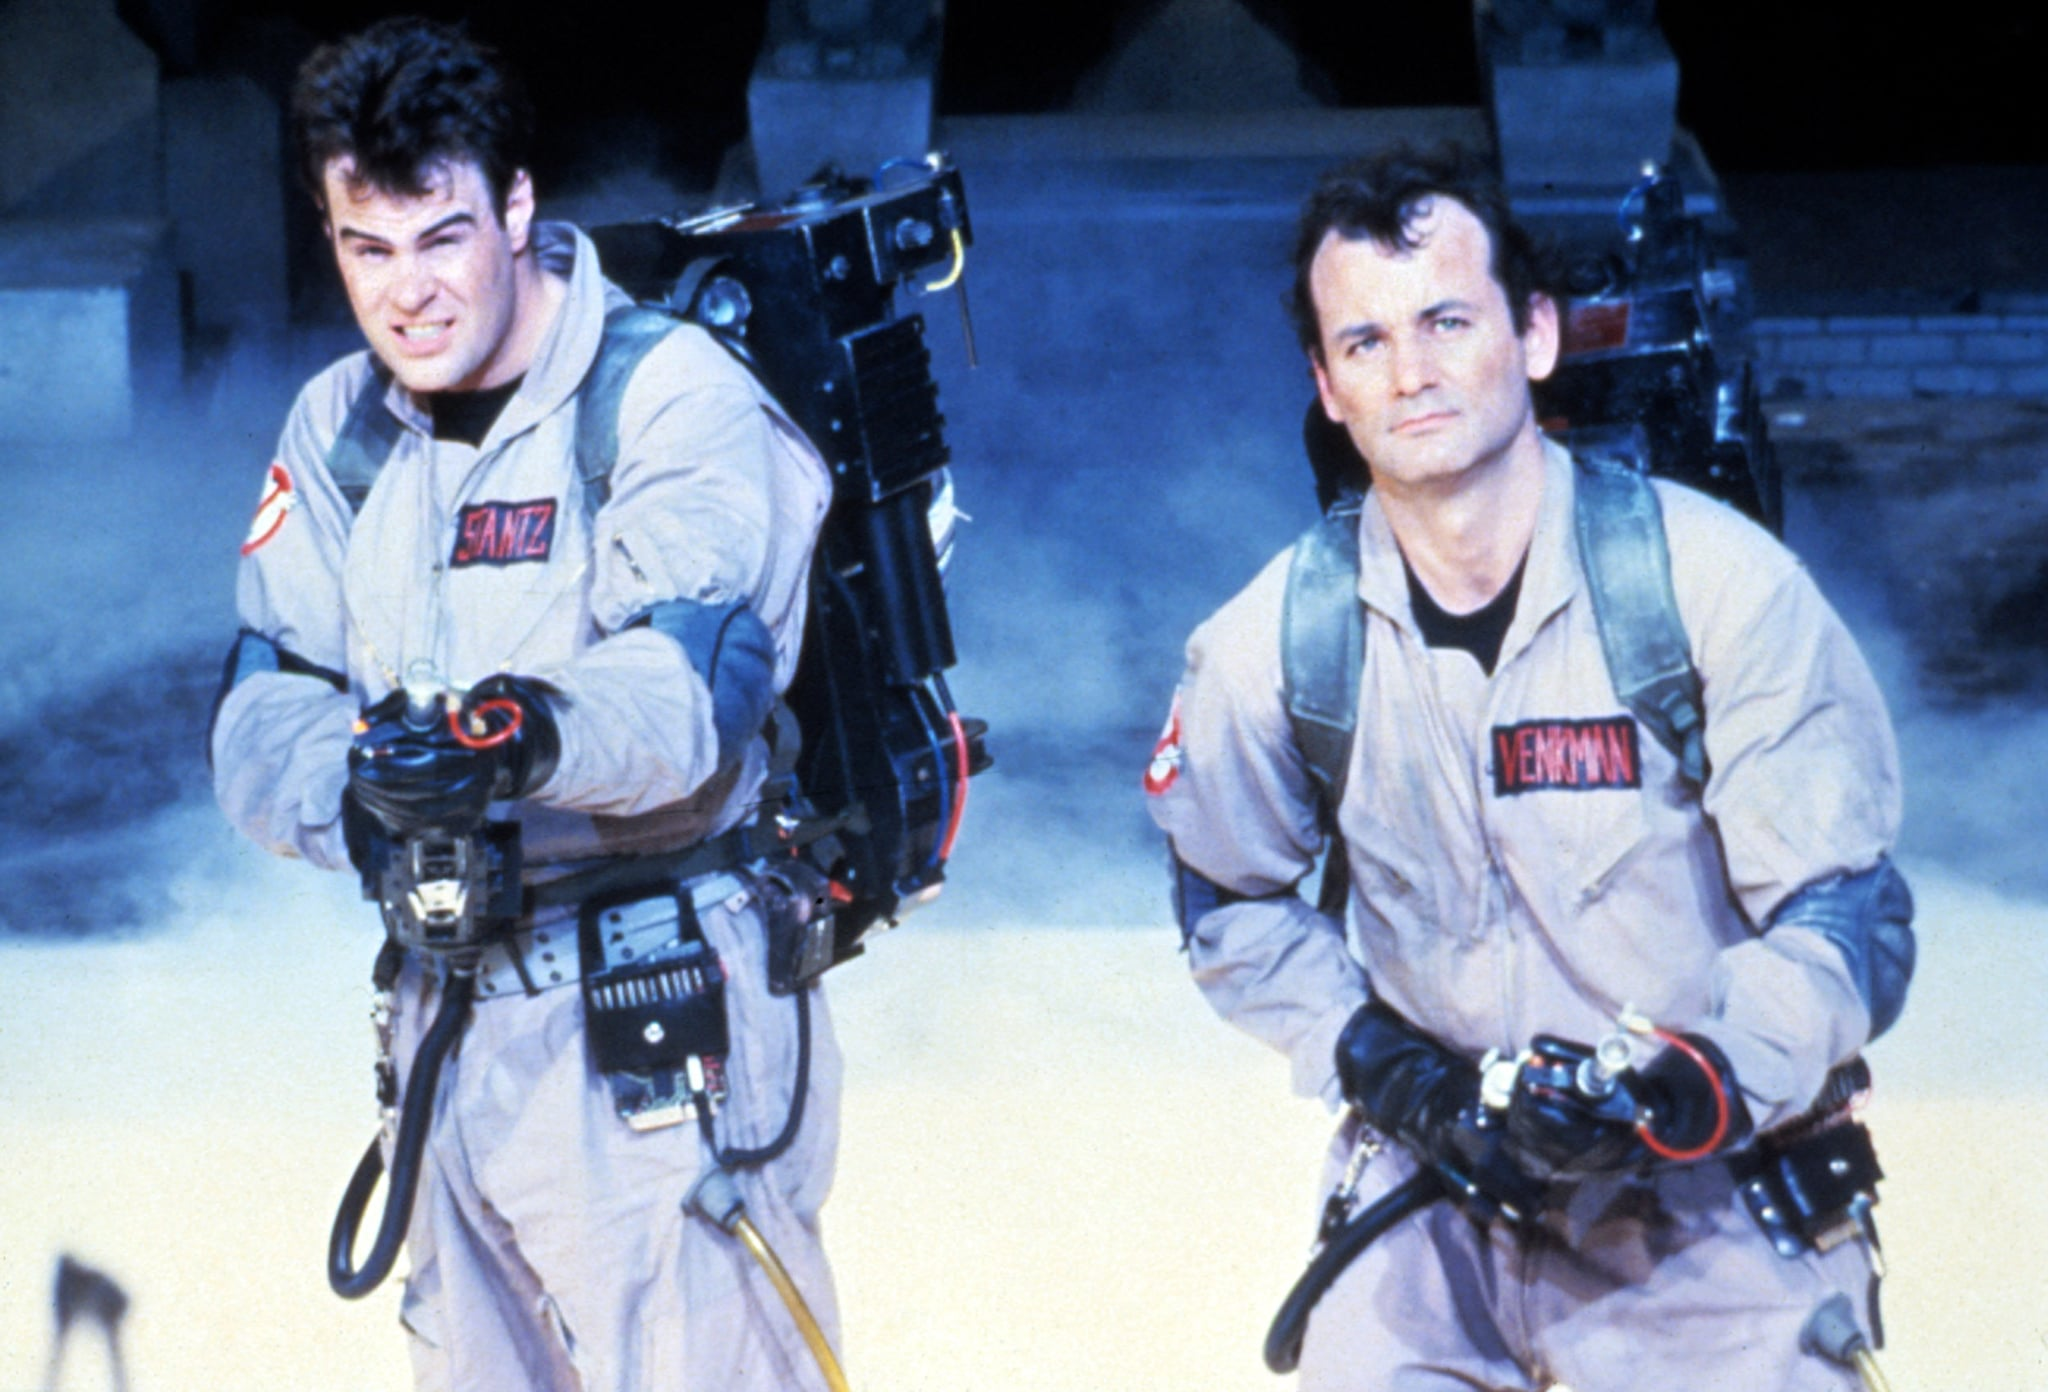 GHOSTBUSTERS, Dan Aykroyd, Bill Murray, 1984.